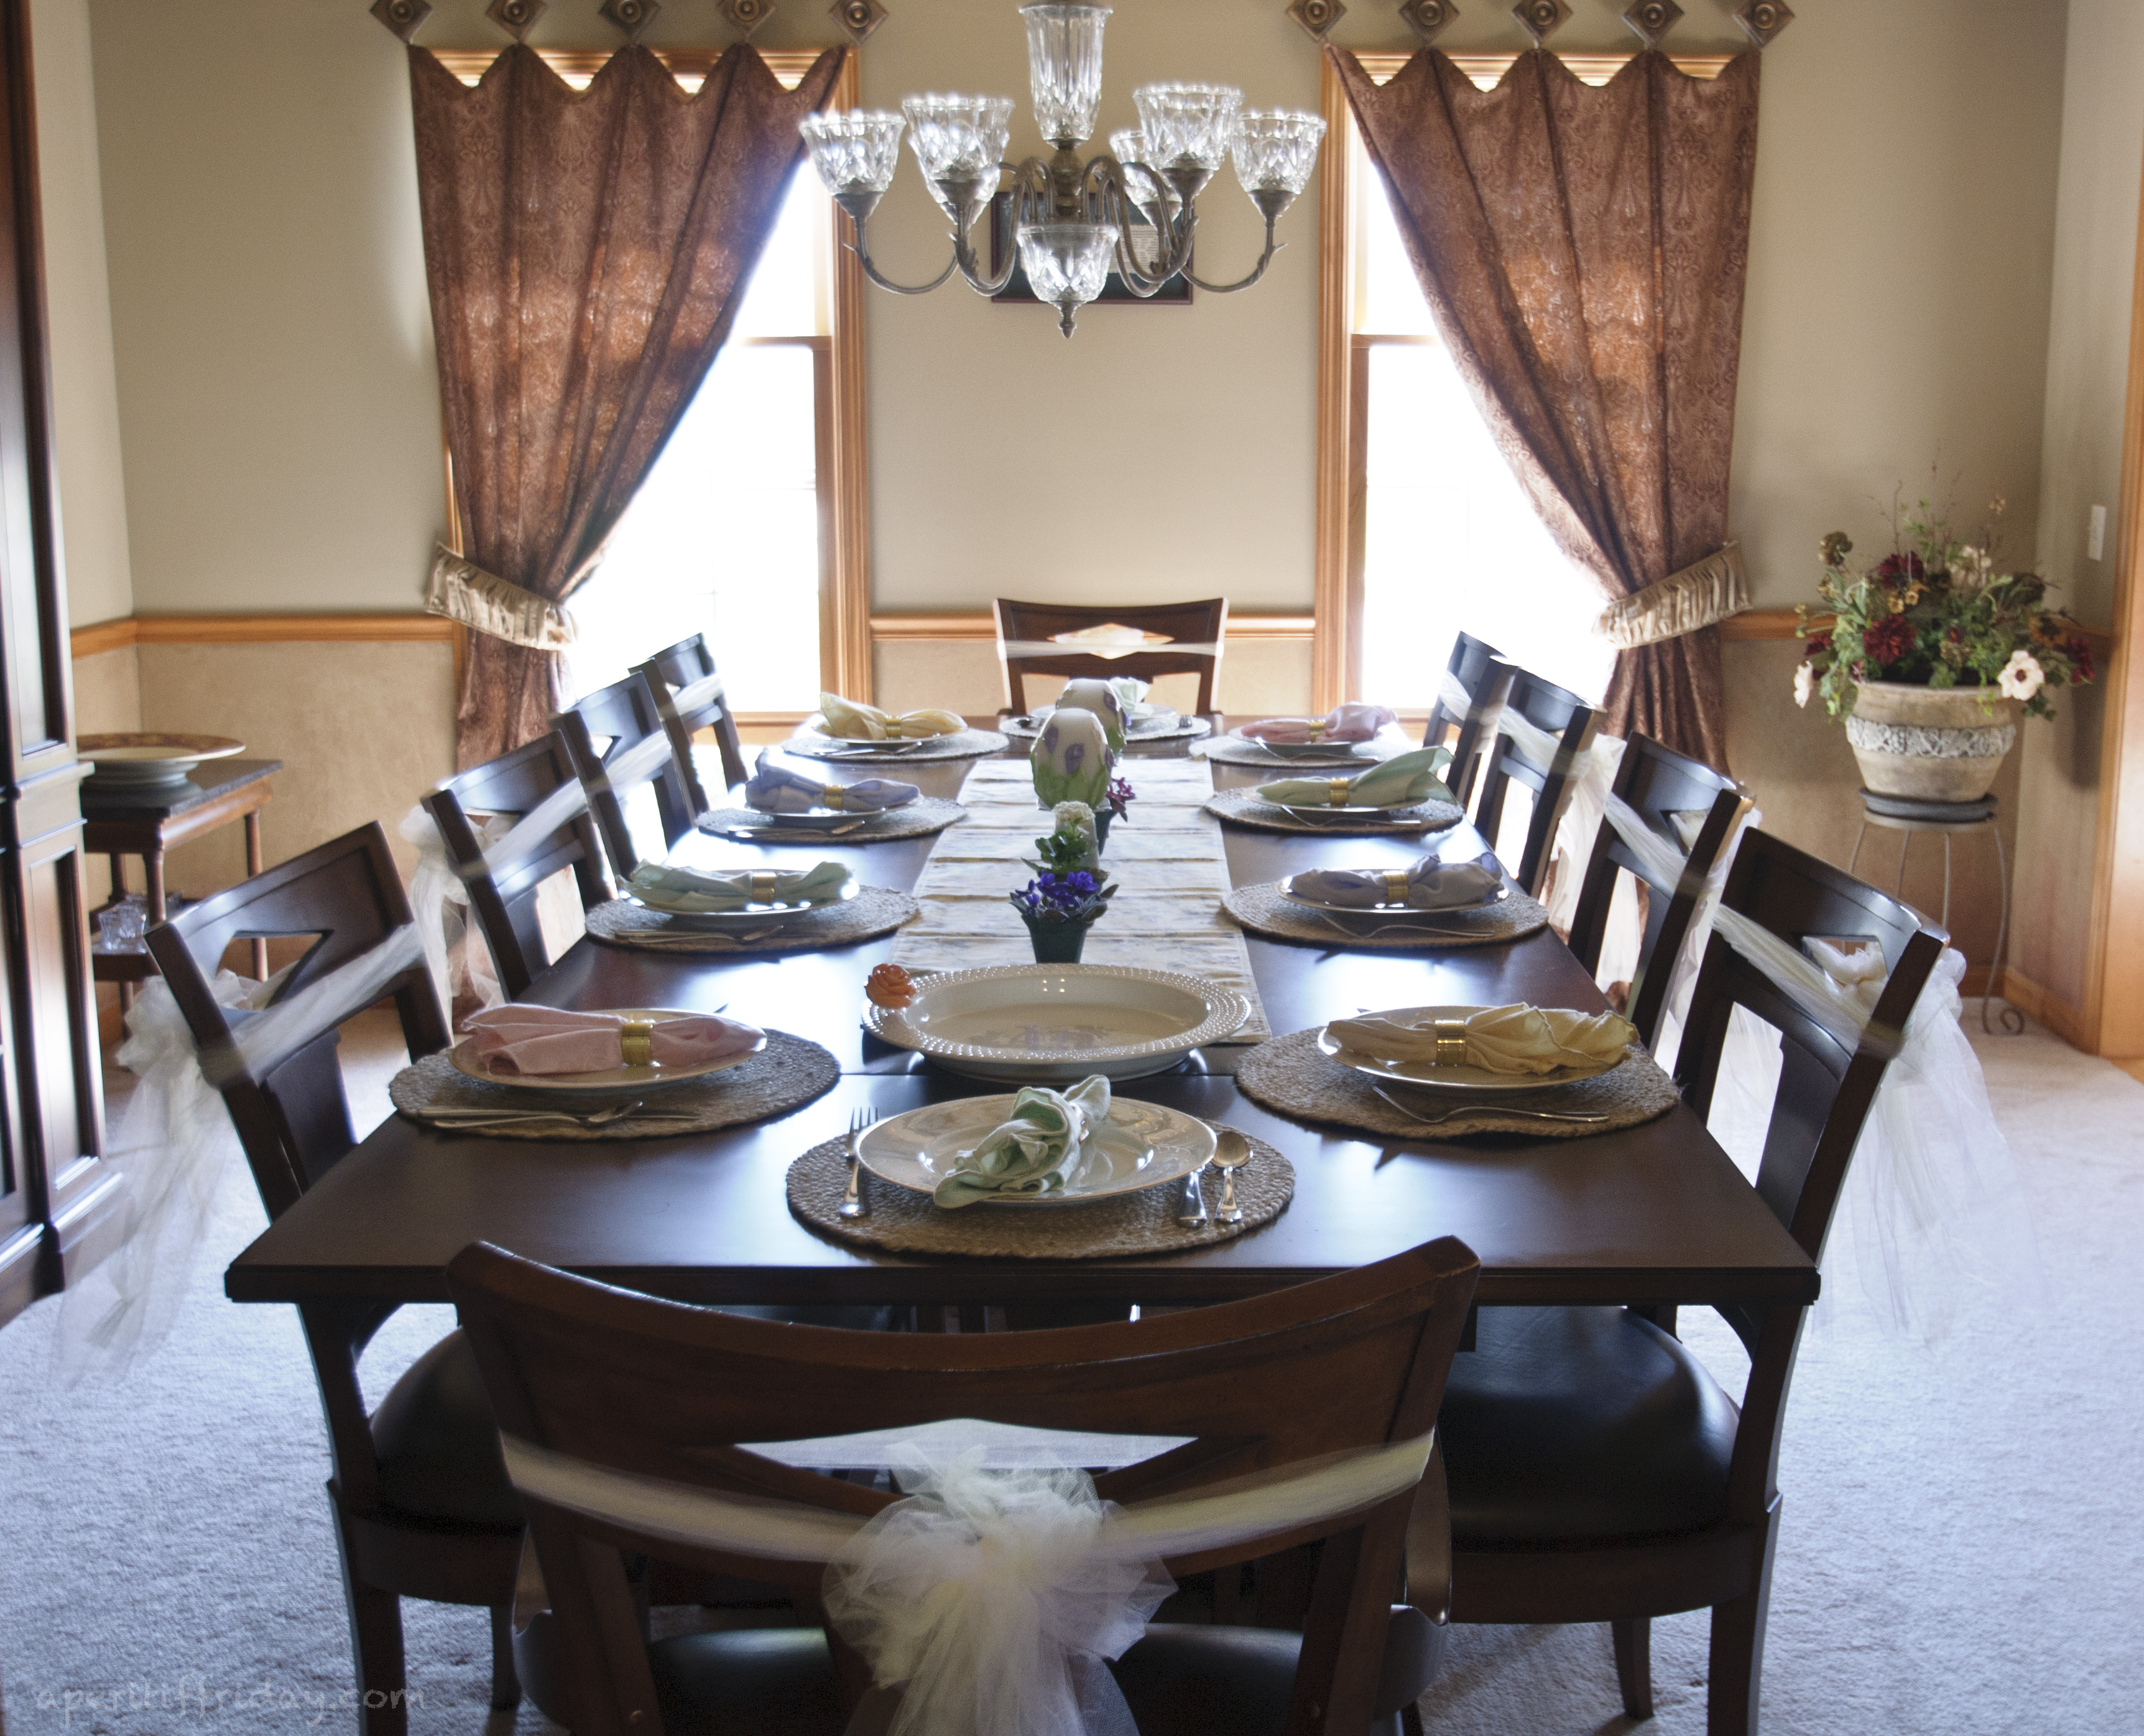 time fancy dining room. I Used The Dining Room For Third Time In A Year Instead Of Just Walking By And Wistfully Wishing Threw Fancy Dinner Parties.